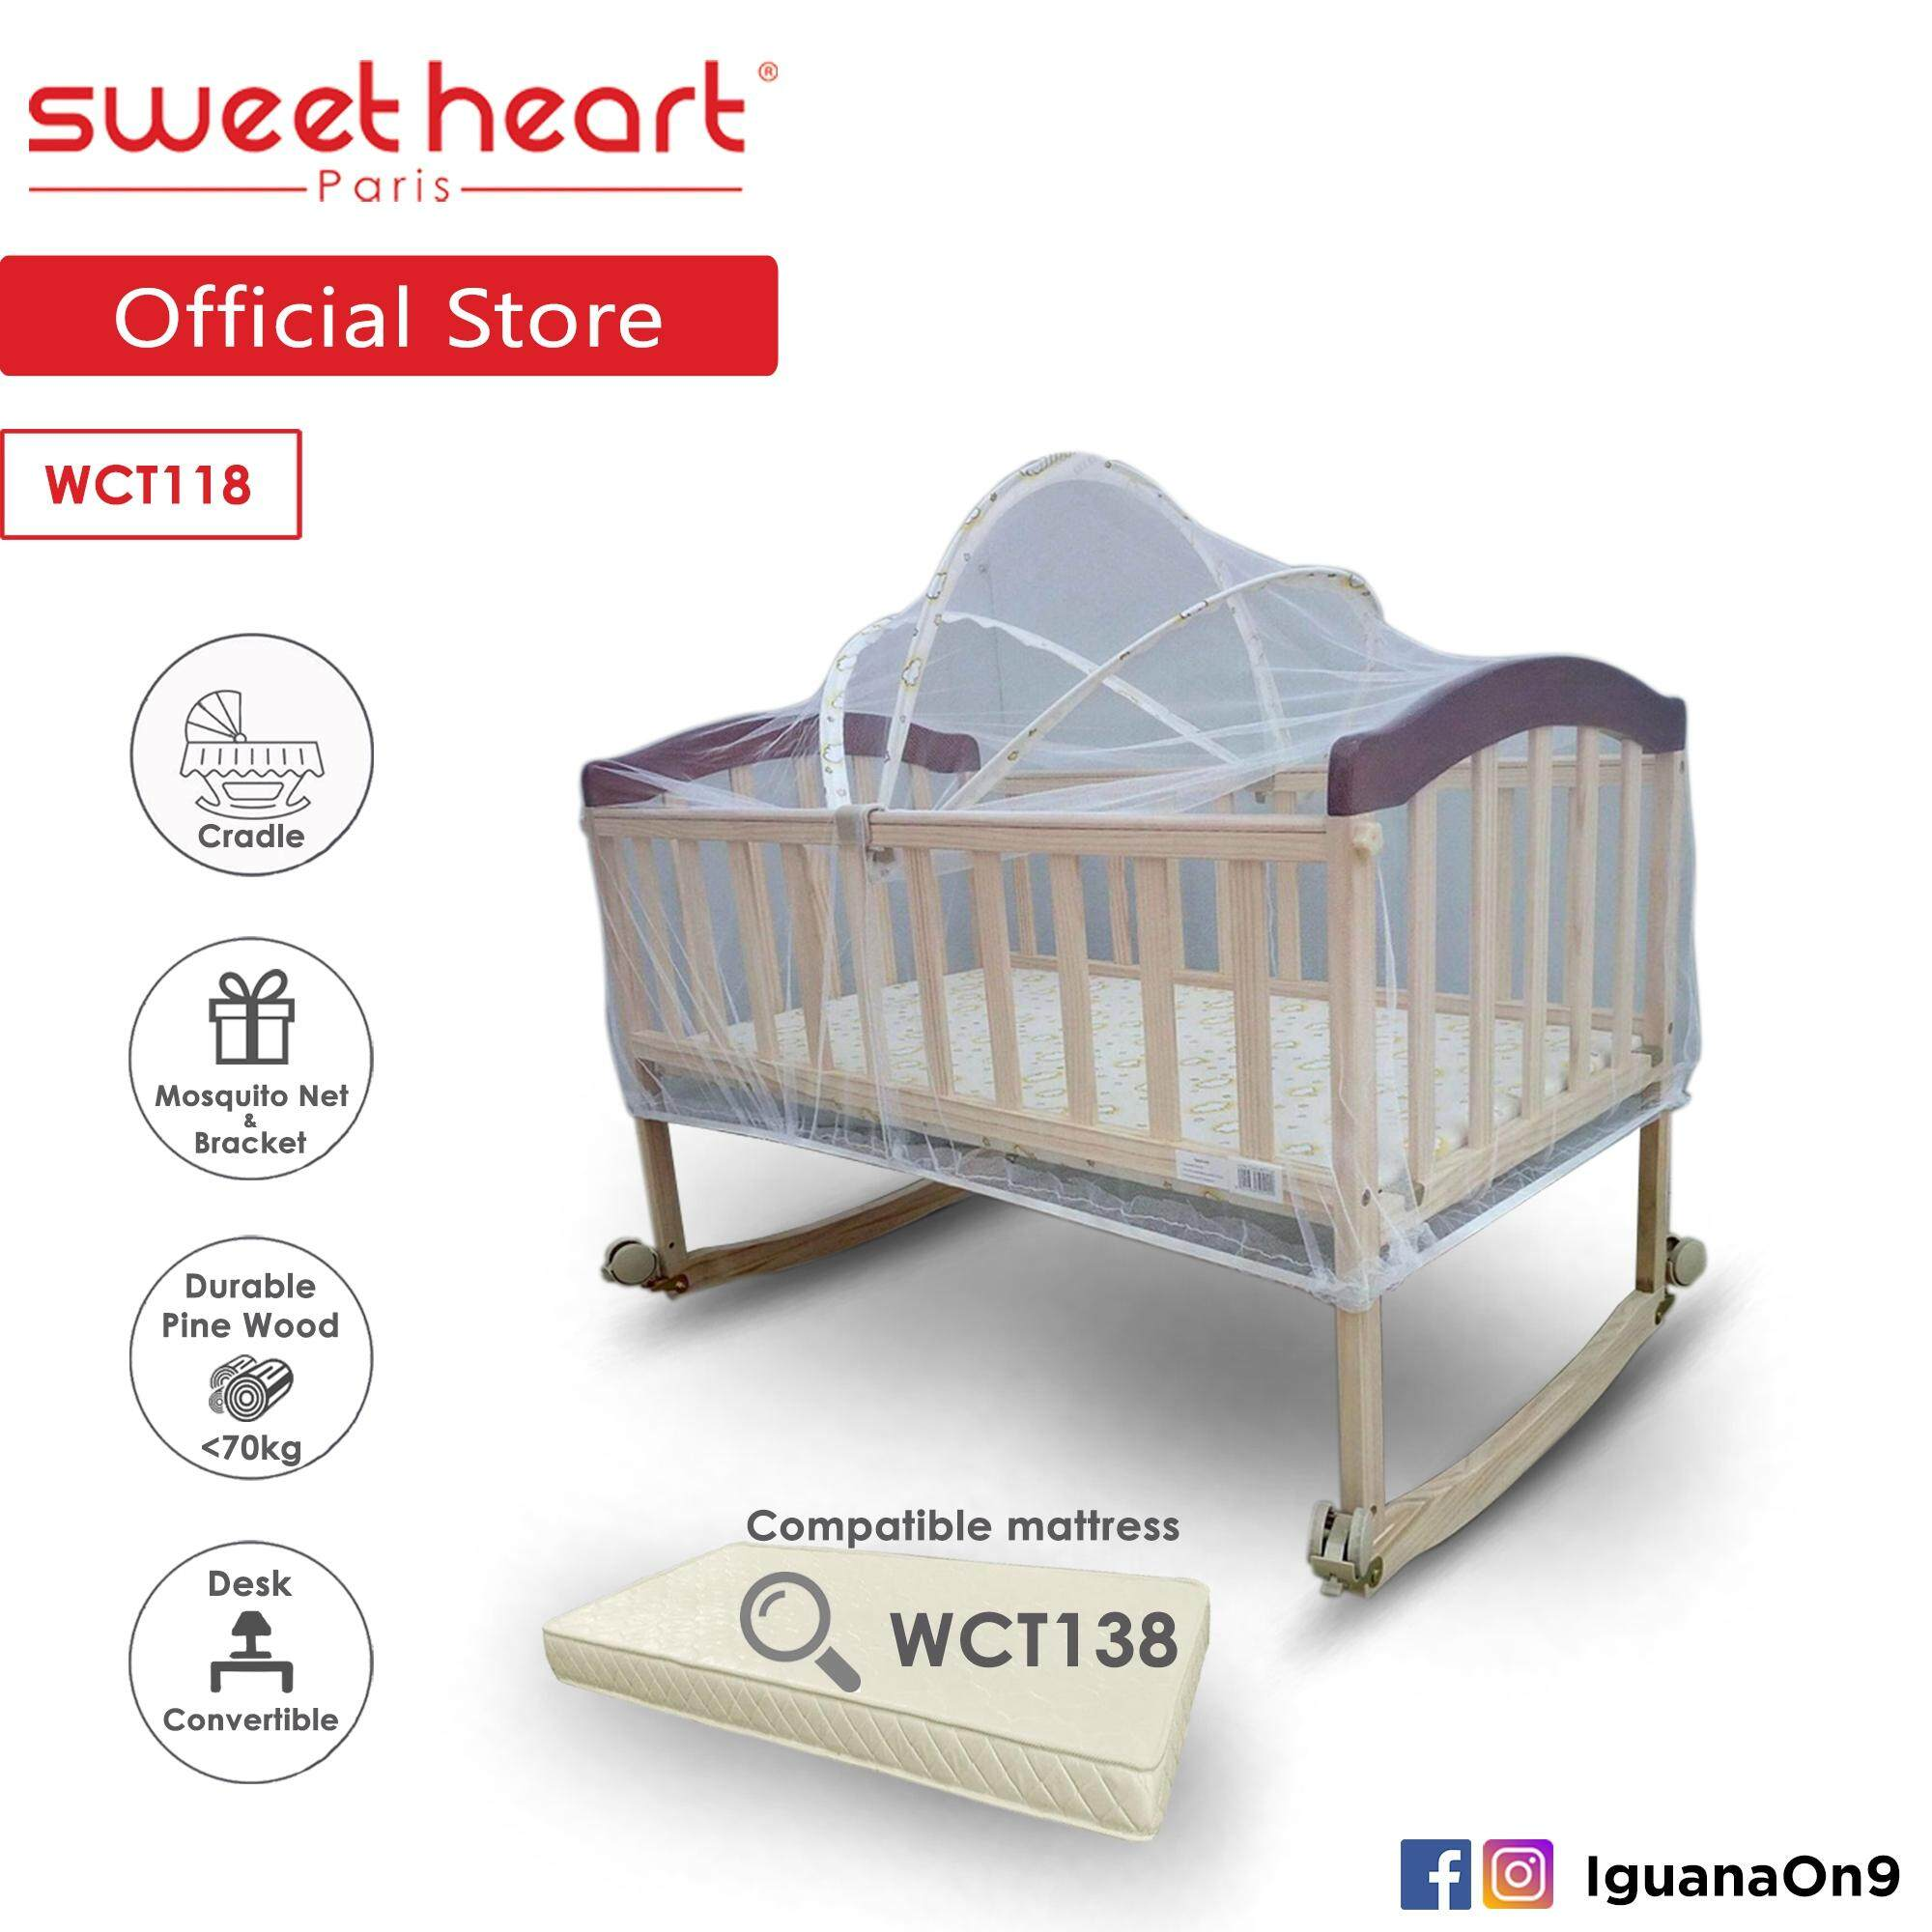 info for c5624 746cc Sweet Heart Paris WCT118 Multi Functional Rocking Cradle Baby Wooden Cot